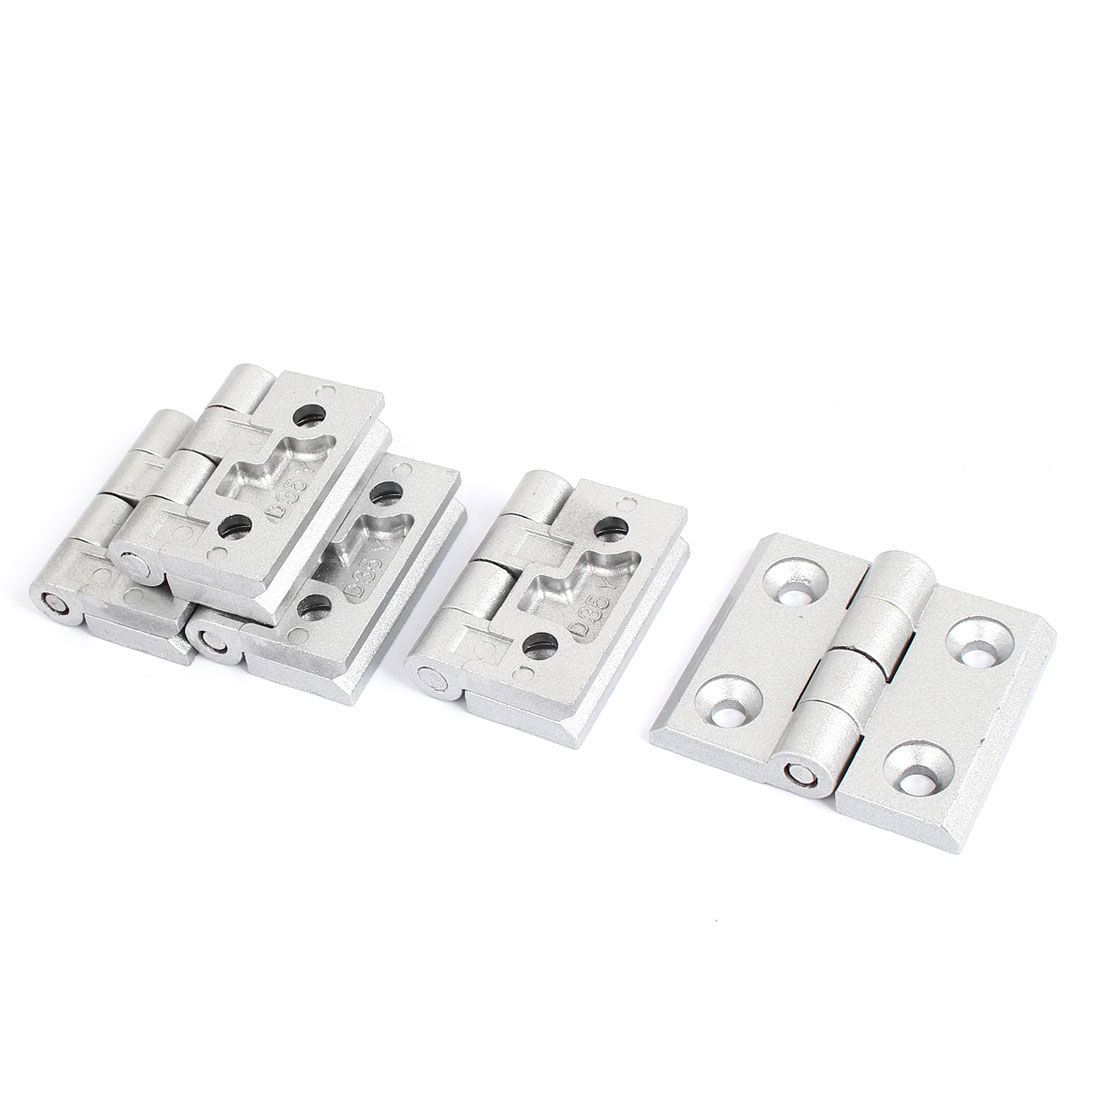 Cabinet Door 2 Leaves Ball Bearing Metal Reinforced Butt Hinge 58mm Long 5pcs